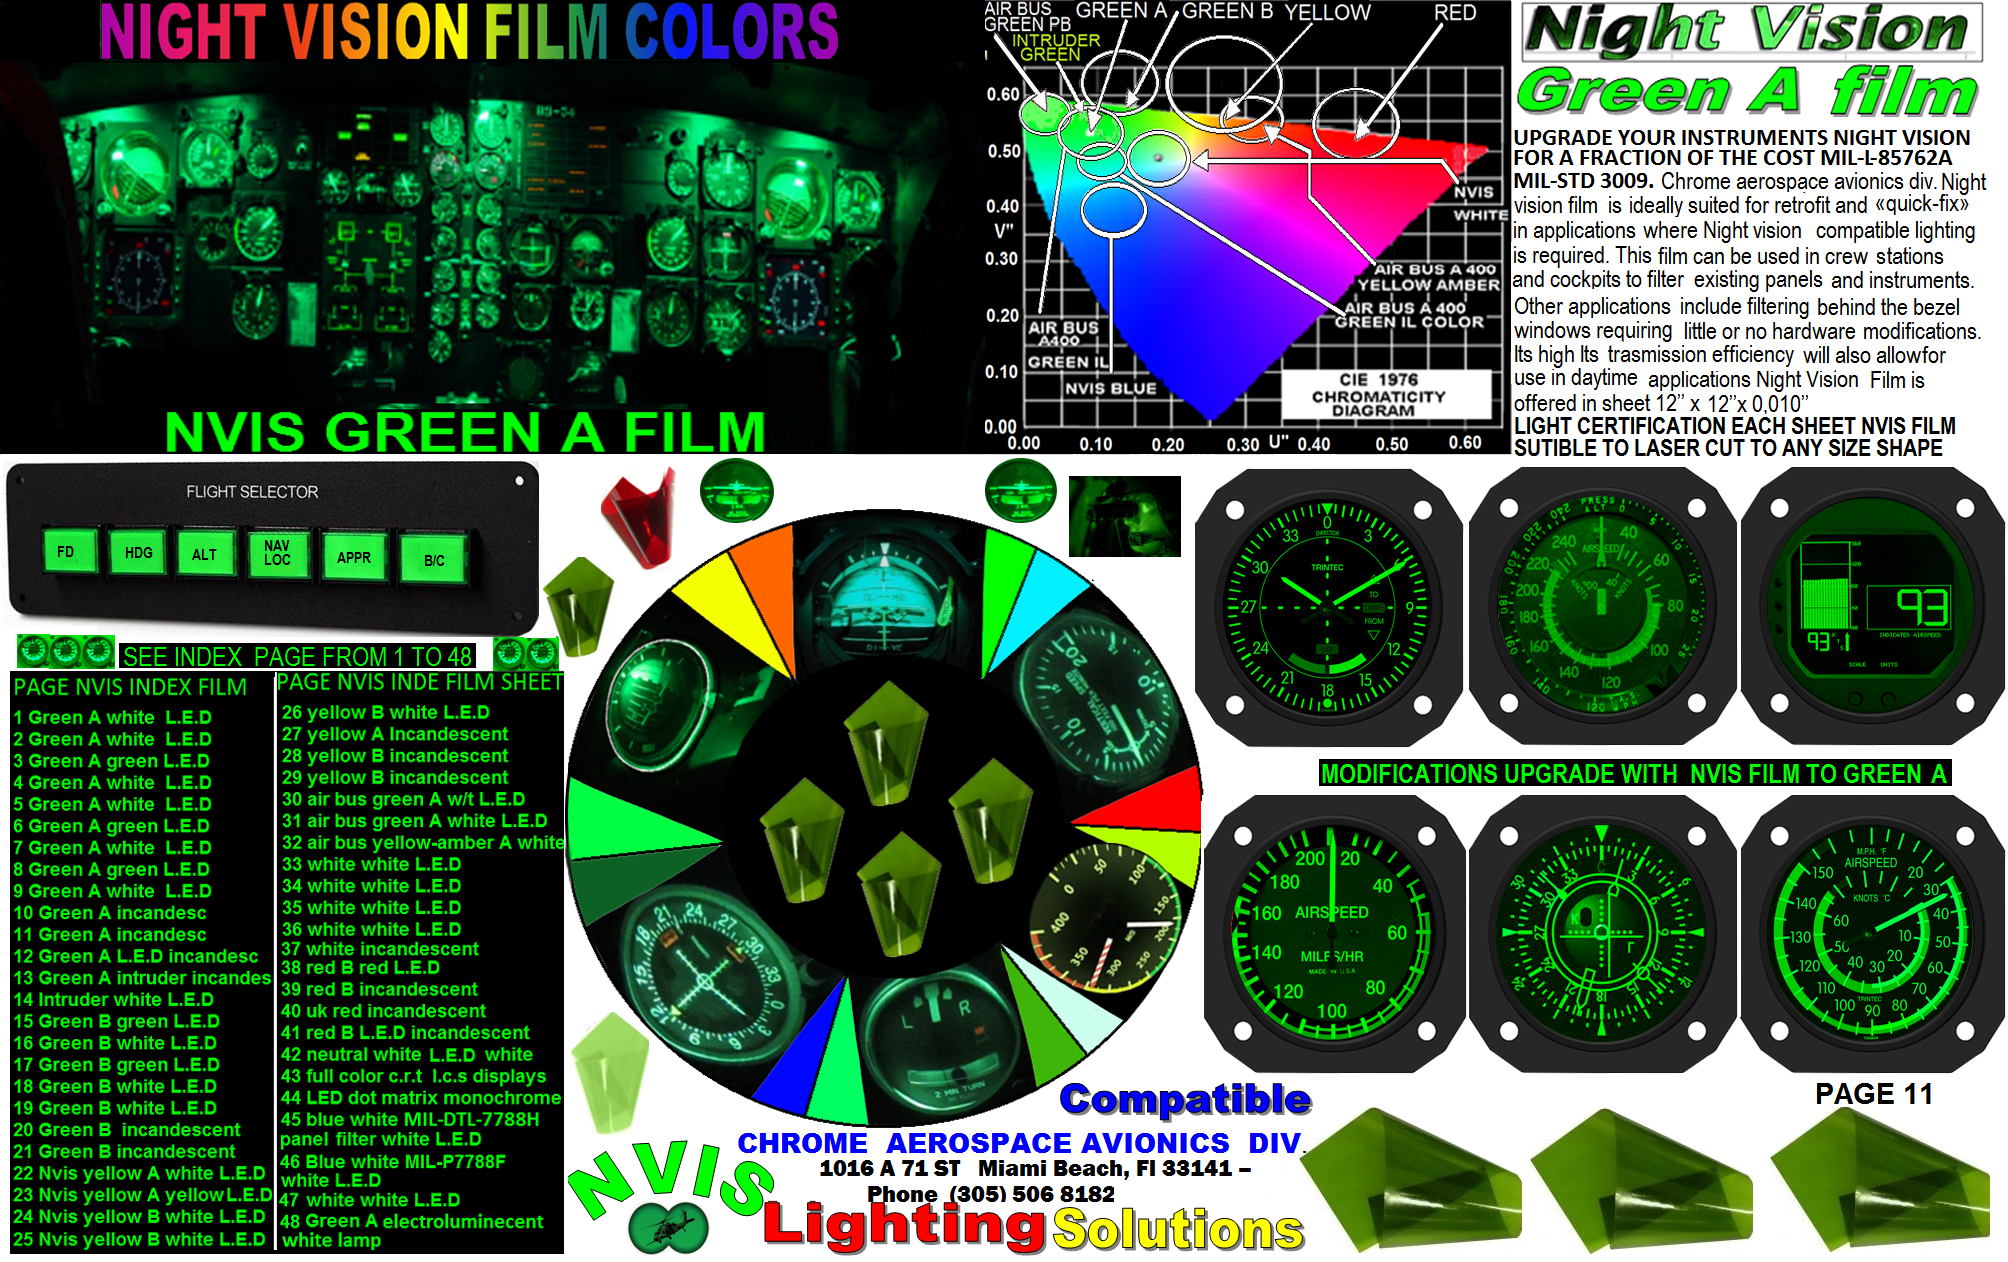 11 NVIS GREEN A FILM UPGRADE CONVERSION INSTRUMENTS 8-9-19